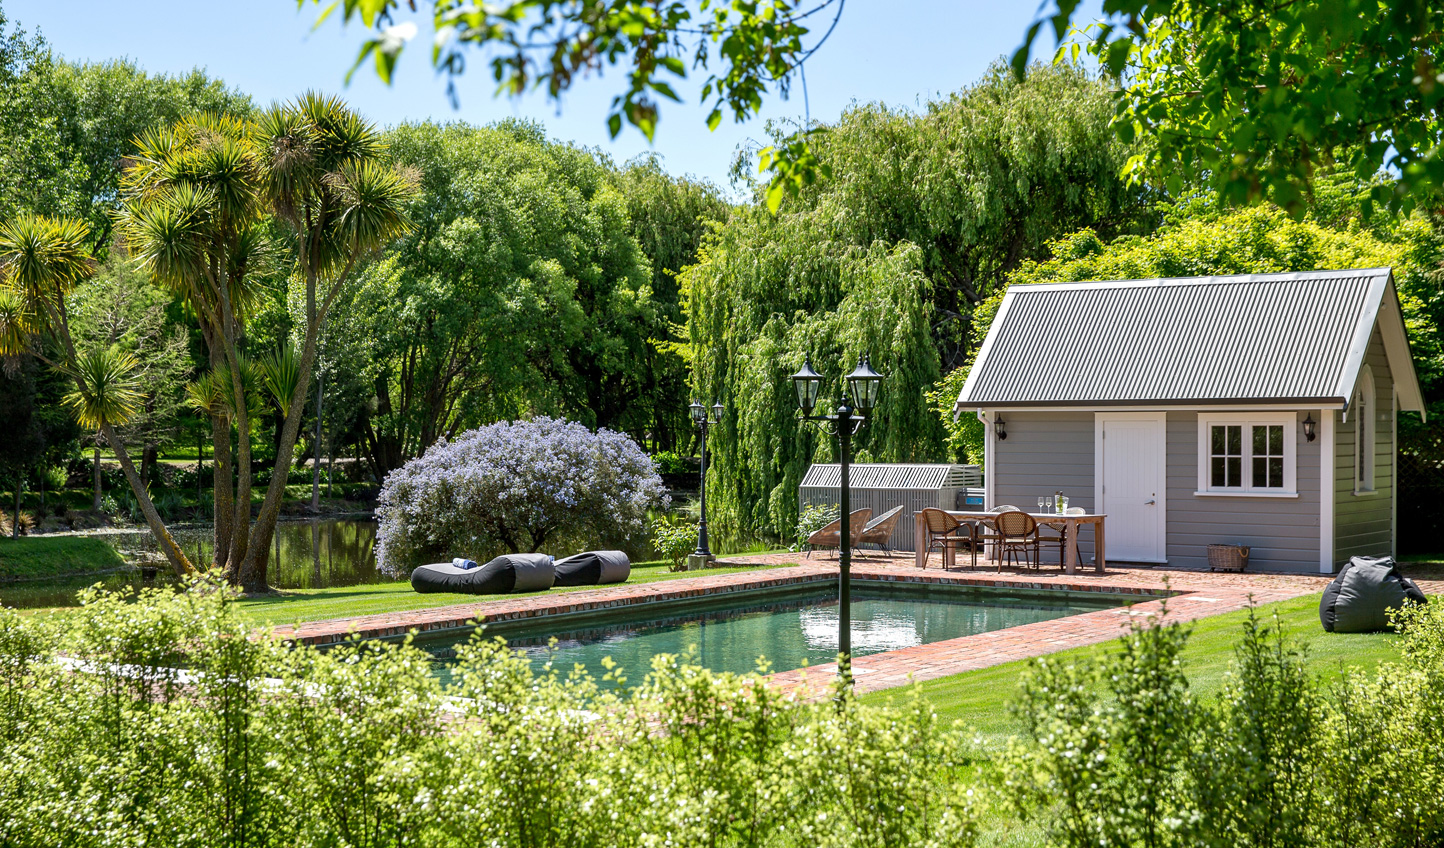 Dive into the garden swimming pool in summer months